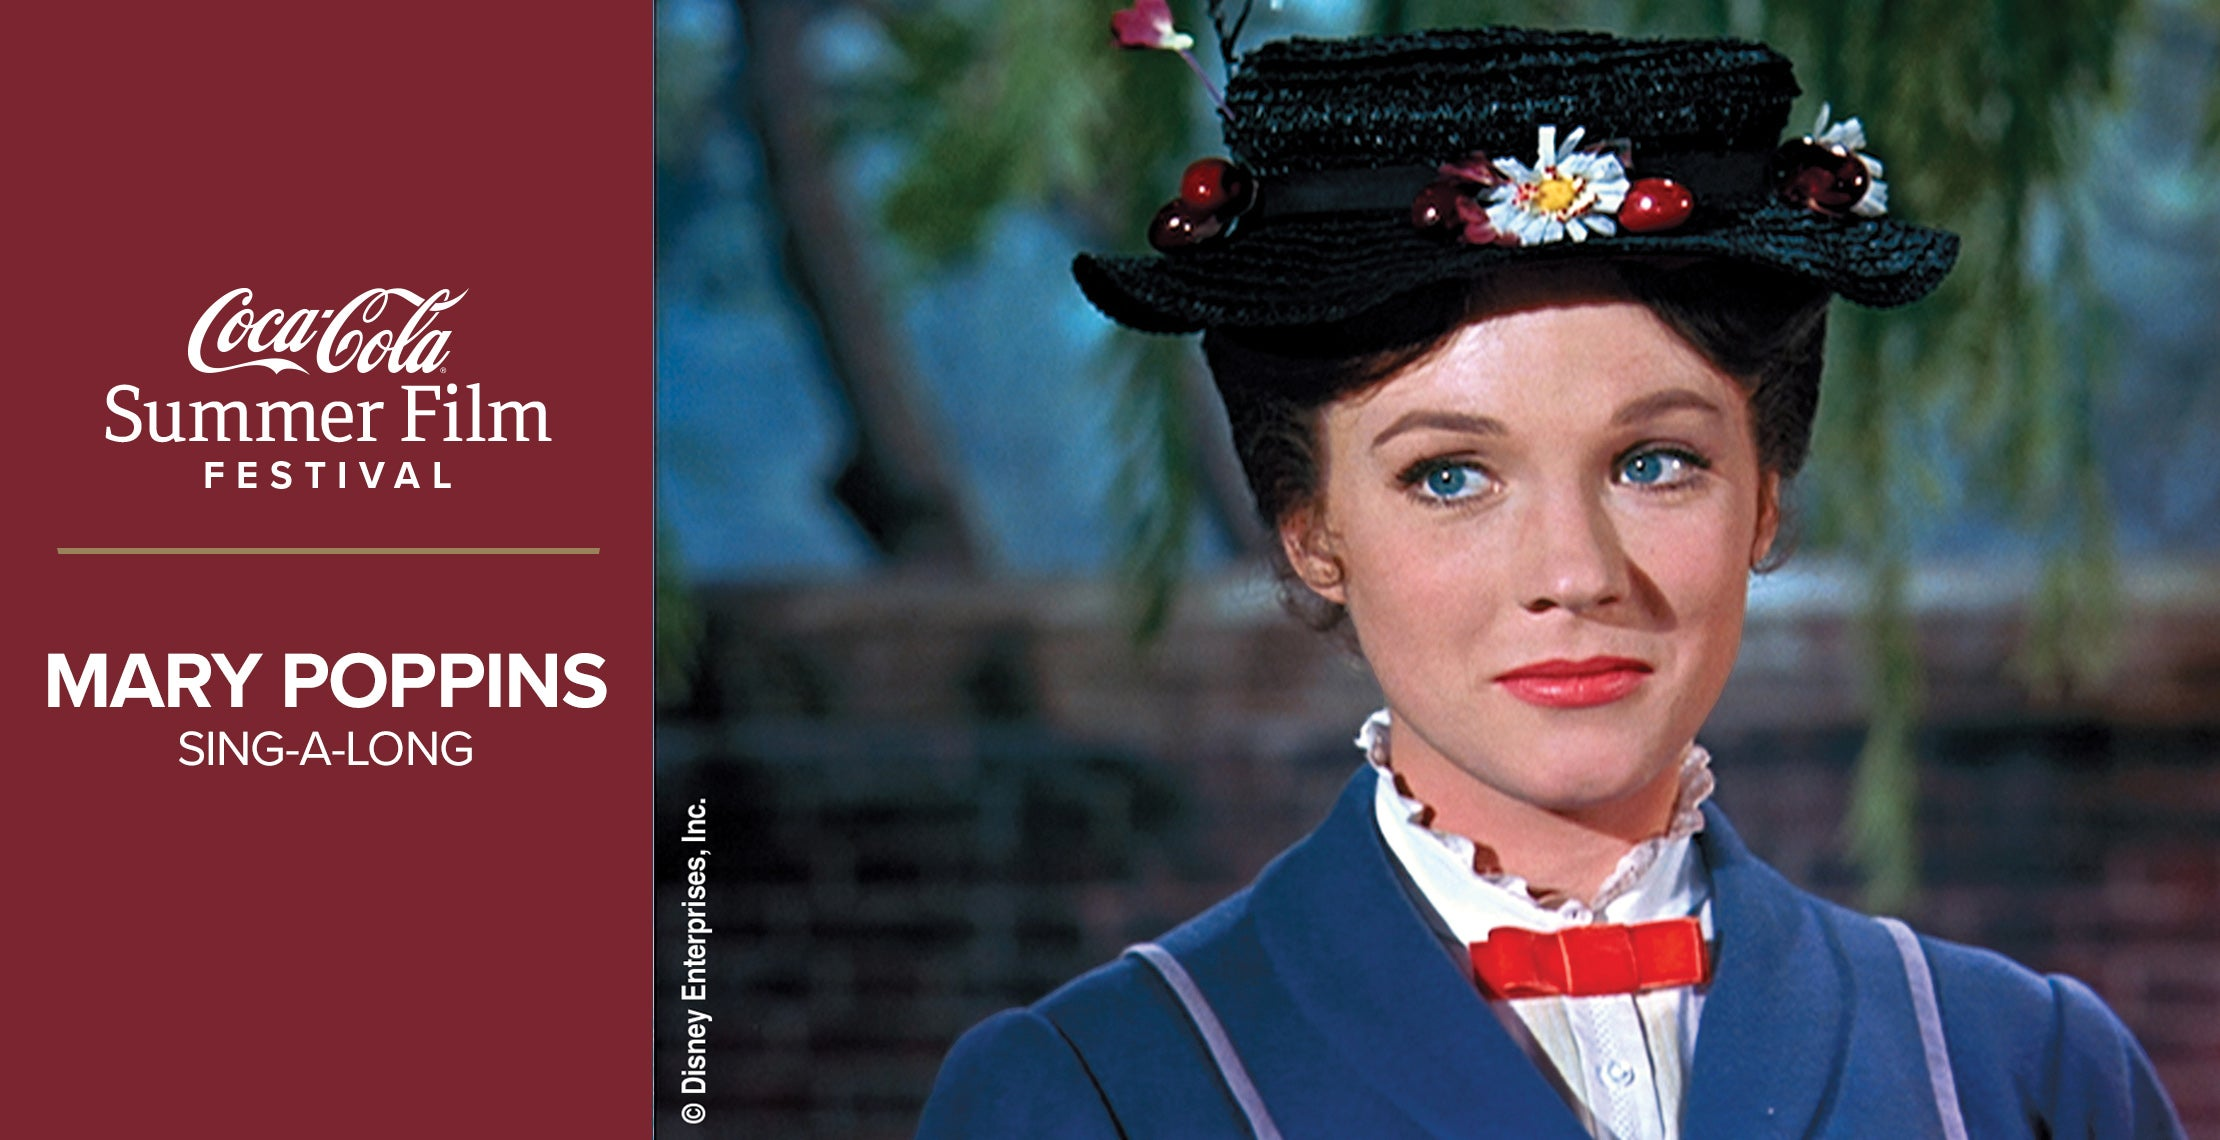 Mary Poppins Sing-along